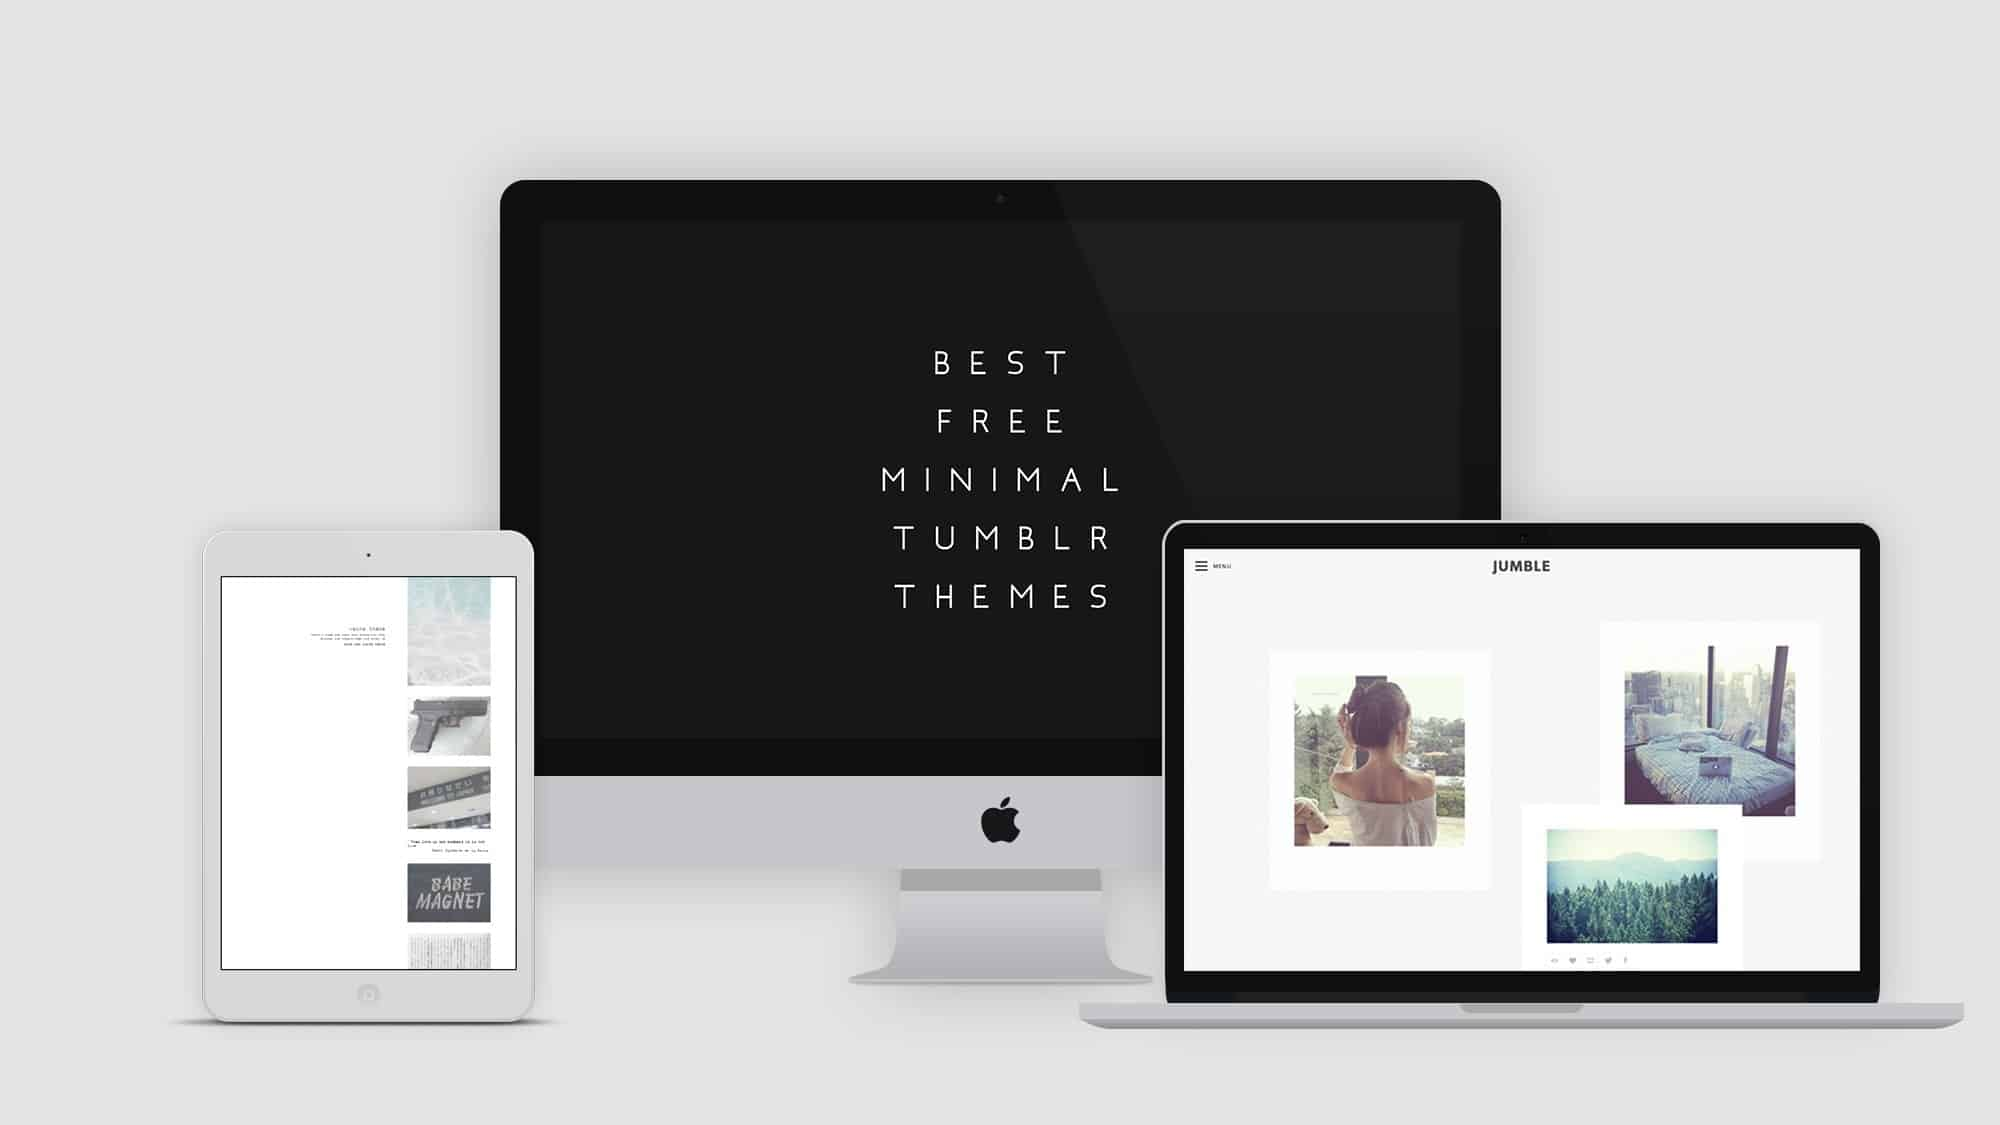 Minimalist Tumblr Themes